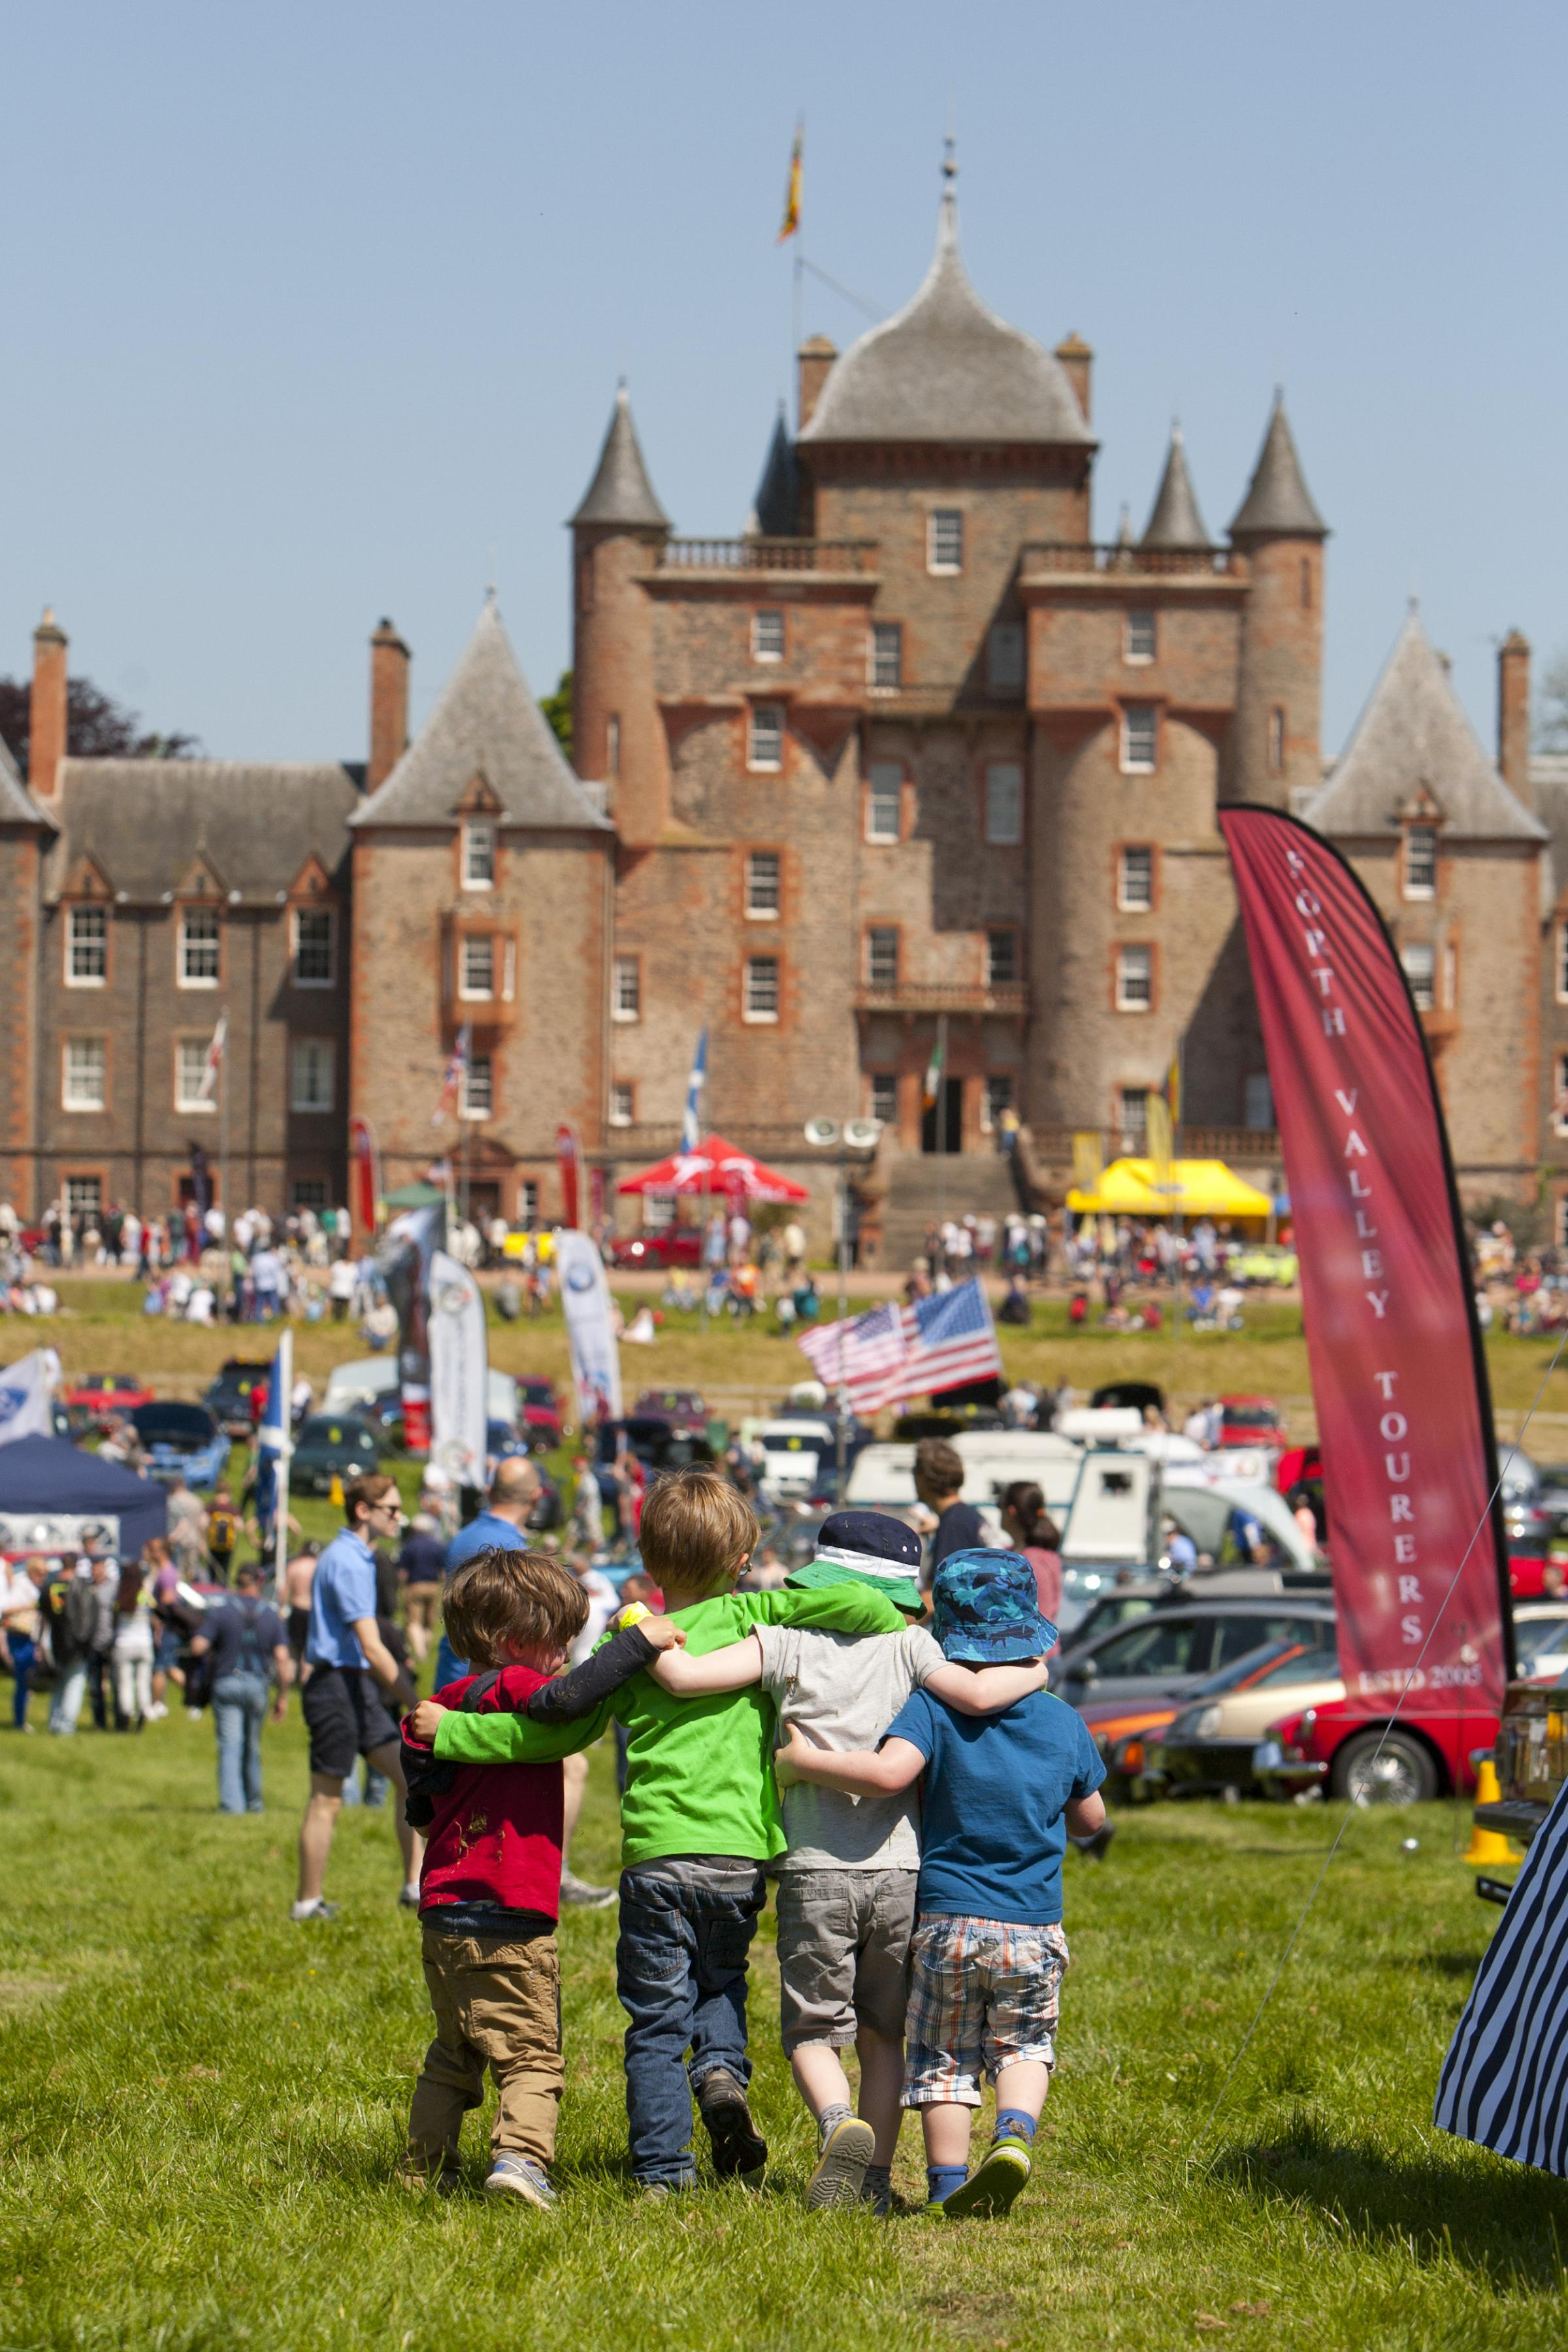 The Historic Motoring Extravaganza is a great day out for all the family.